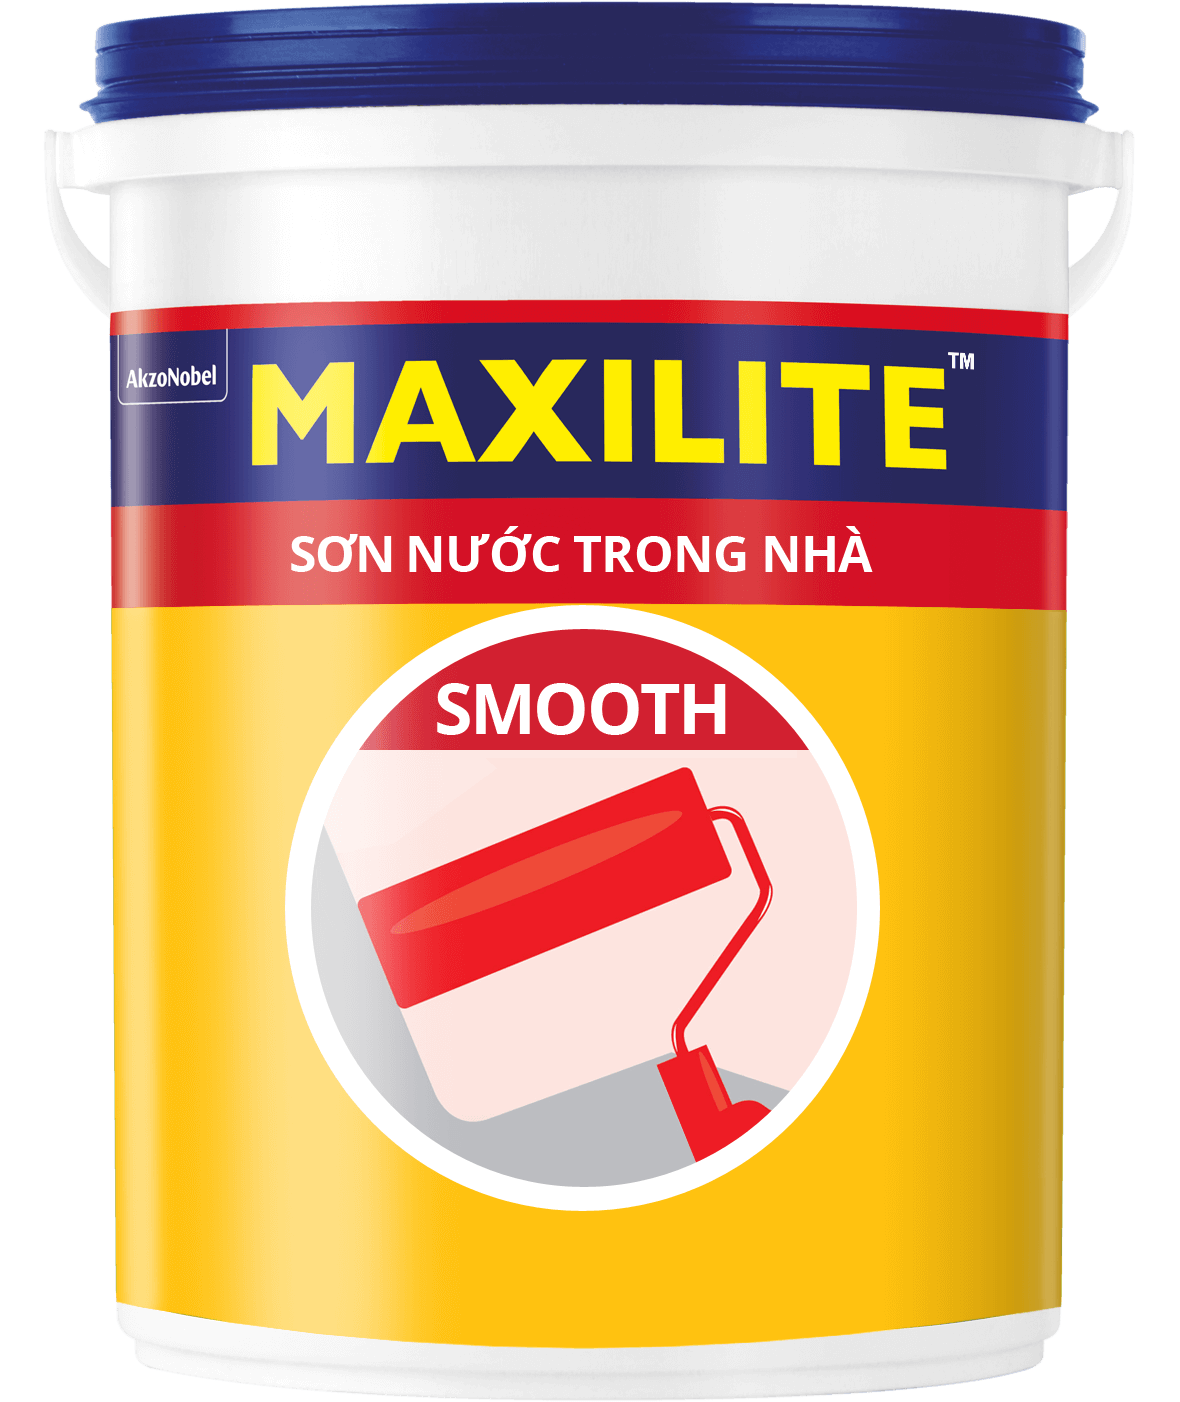 son-nuoc-noi-that-maxilite-smooth-son-gia-re